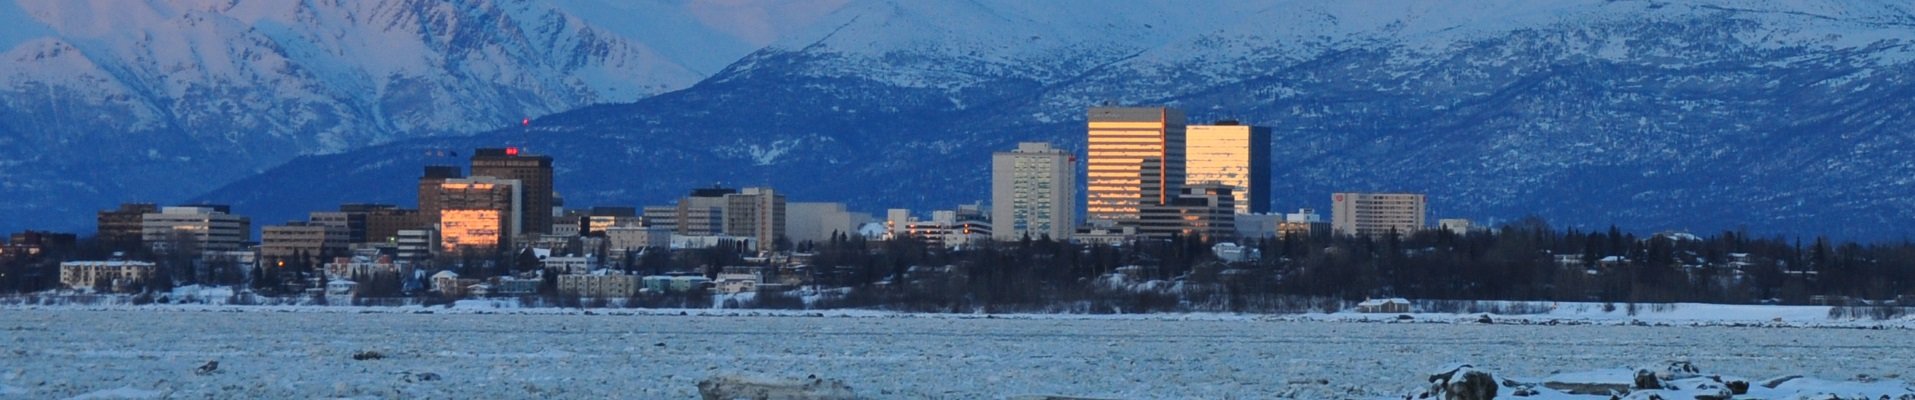 Anchorage Winter Night